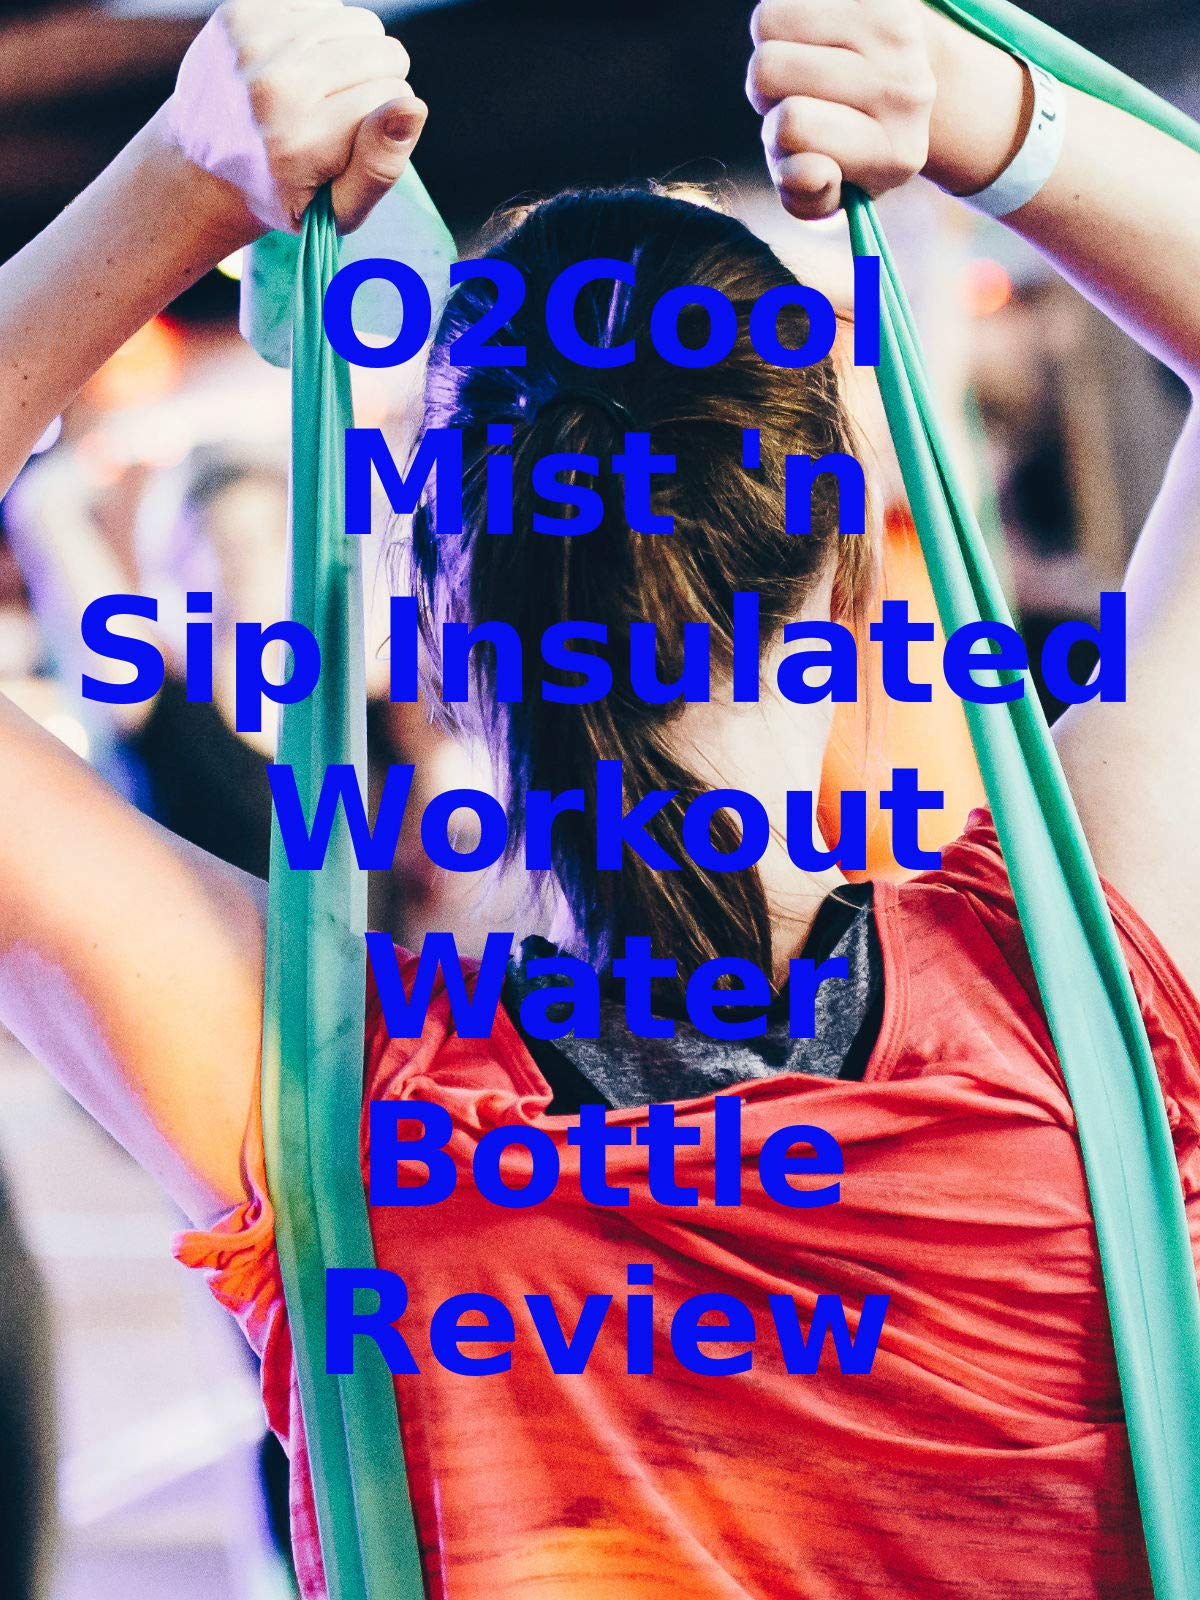 Review: O2Cool Mist 'n Sip Insulated Workout Water Bottle Review on Amazon Prime Video UK